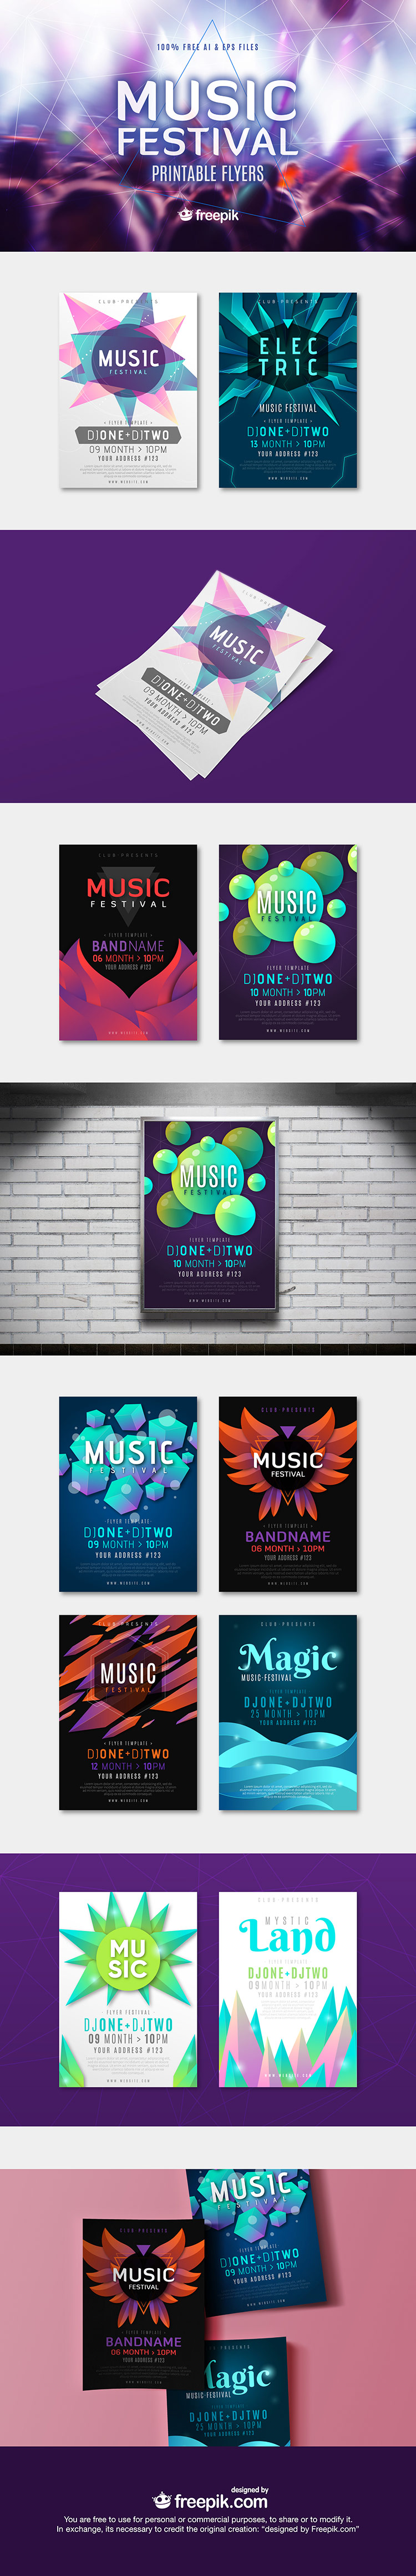 Free Download - Music Festival Flyers - Vectorgraphit